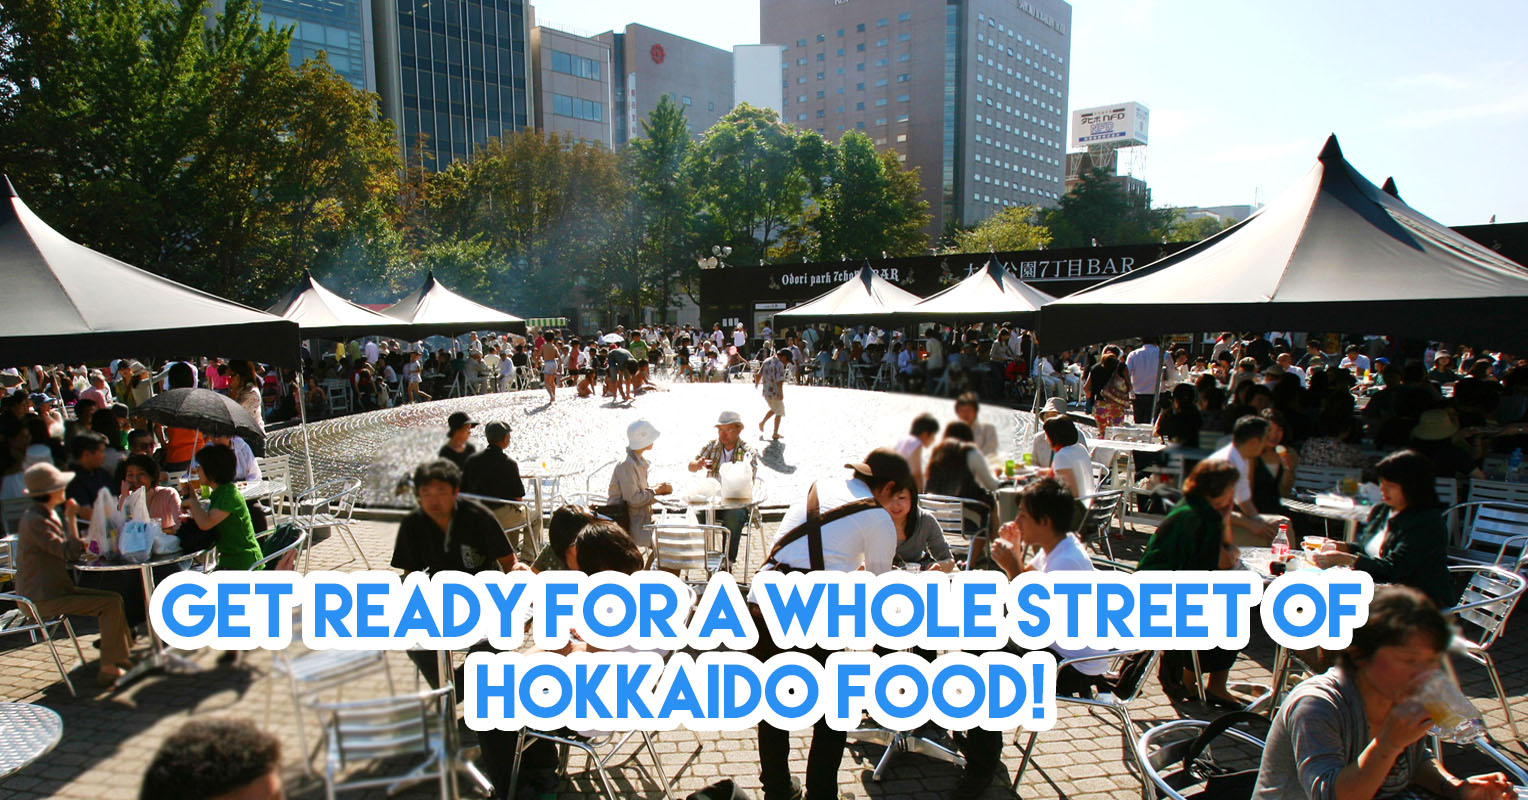 Hello Hokkaido! Festival: Food & Travel Fair At RWS With Ramen, Soft Serves & Fresh Crabs